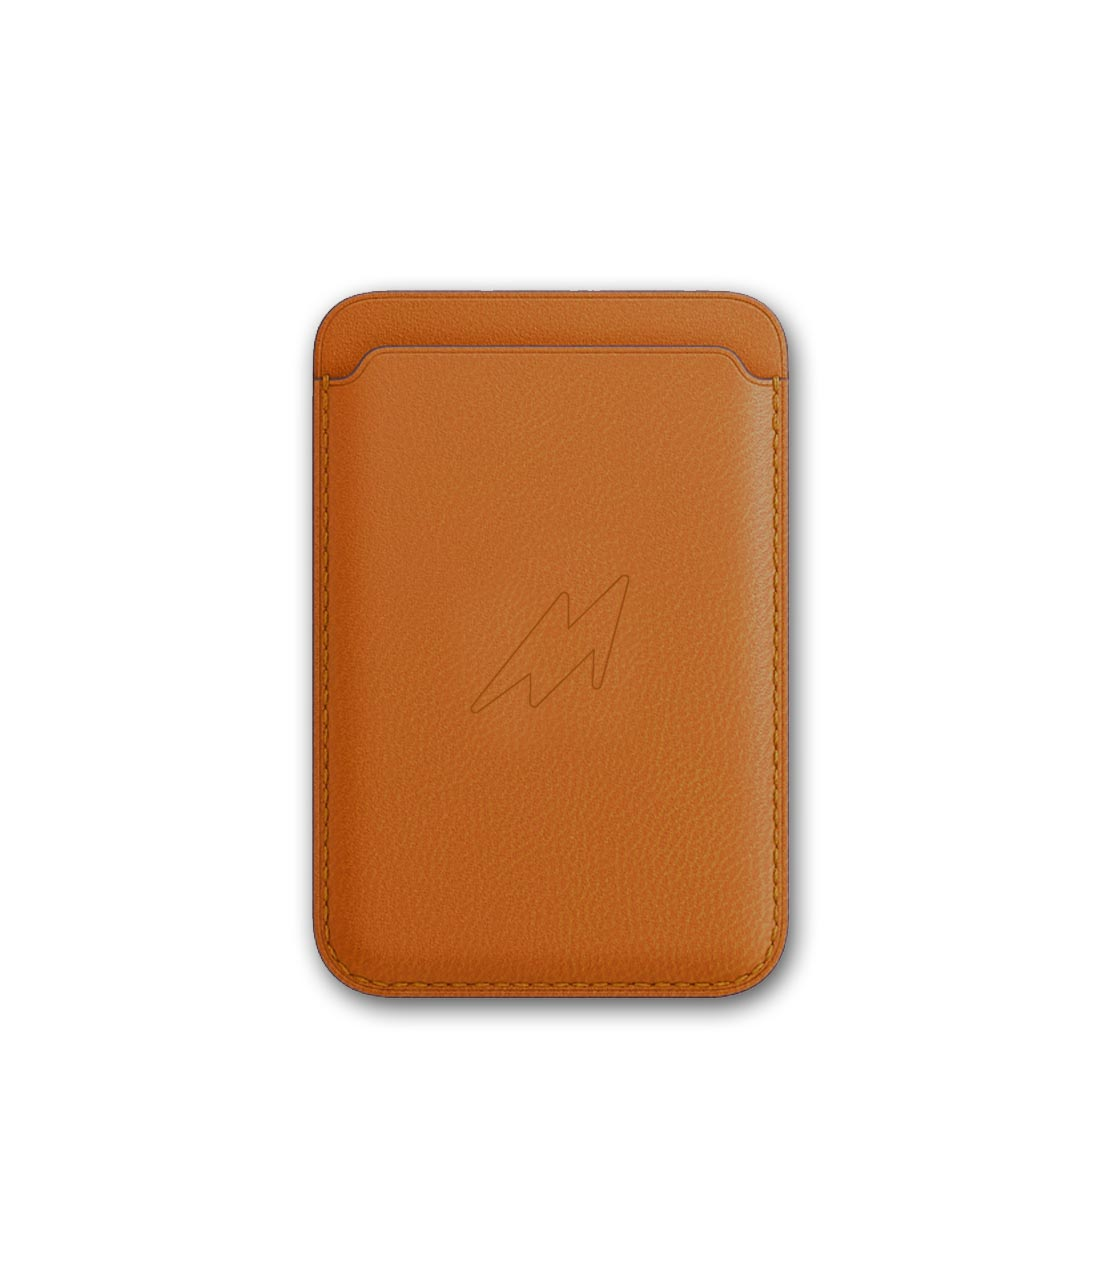 Leather Case Orange - Magnetic Card Case